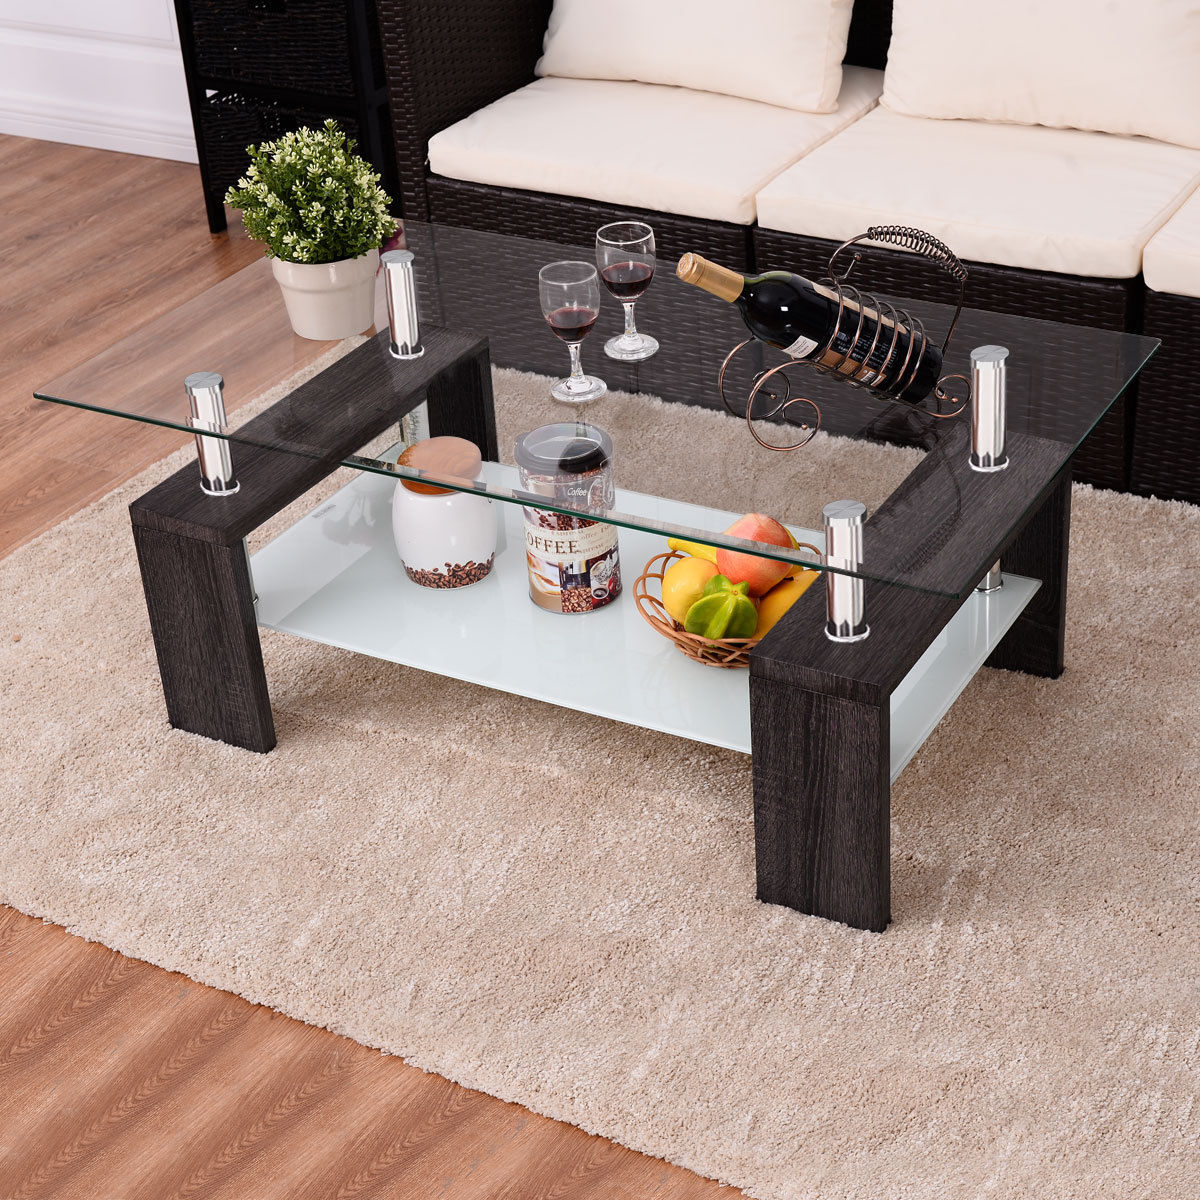 Costway Black Rectangular Tempered Glass Coffee Table w Shelf Wood Living Room Furniture by Costway